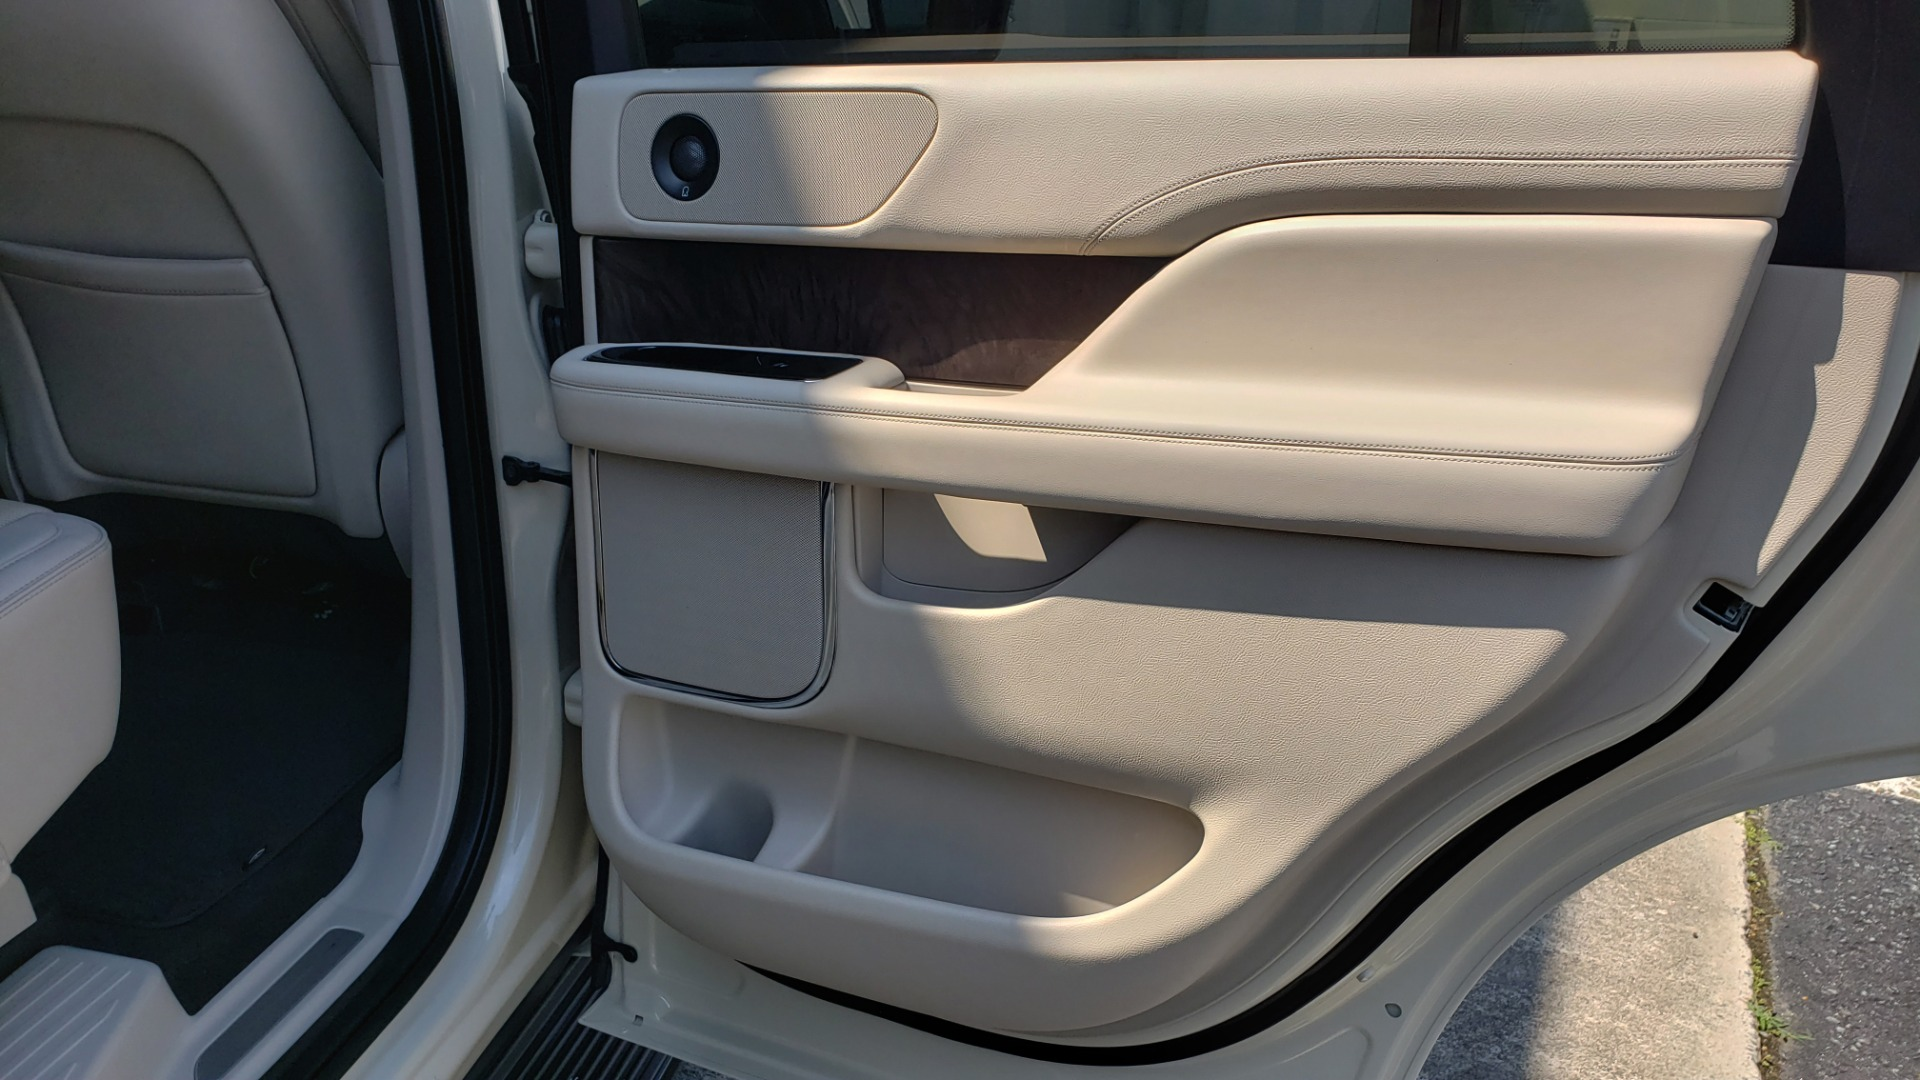 Used 2018 Lincoln NAVIGATOR PREMIERE 4X2 / TWIN-TURBO V6 / NAV / 3-ROW / REARVIEW for sale Sold at Formula Imports in Charlotte NC 28227 81